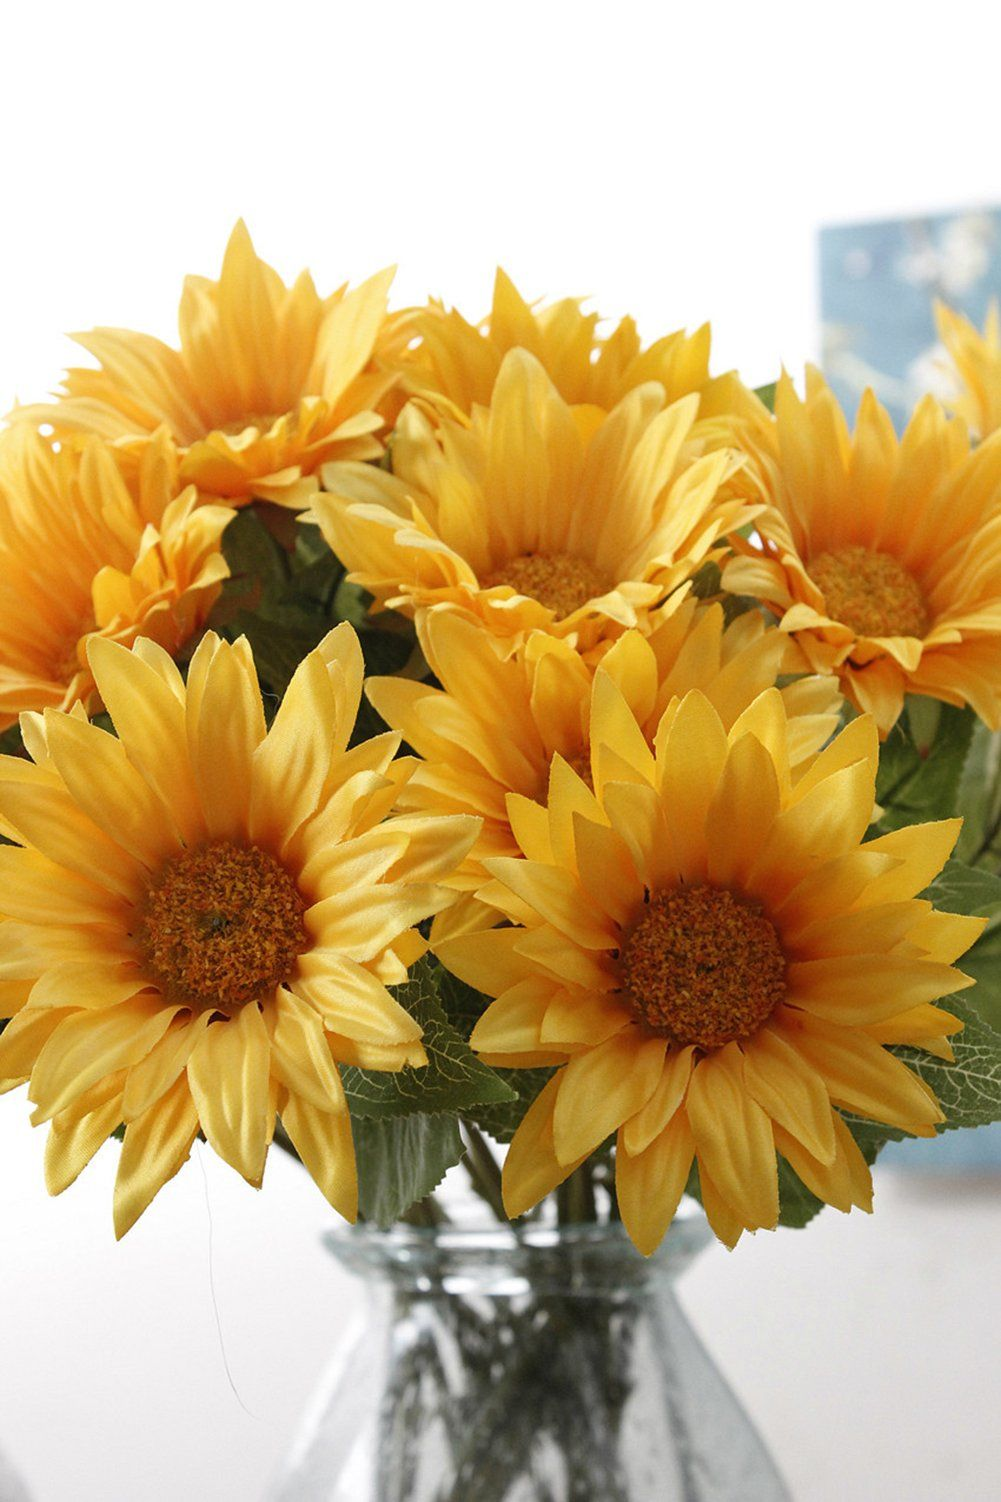 Charmly 6 Pcs Artificial Sunflowers Fake Sunflowers Artificial Silk Flowers For Home Hotel Office Wedding Pa Artificial Silk Flowers Garden Crafts Silk Flowers